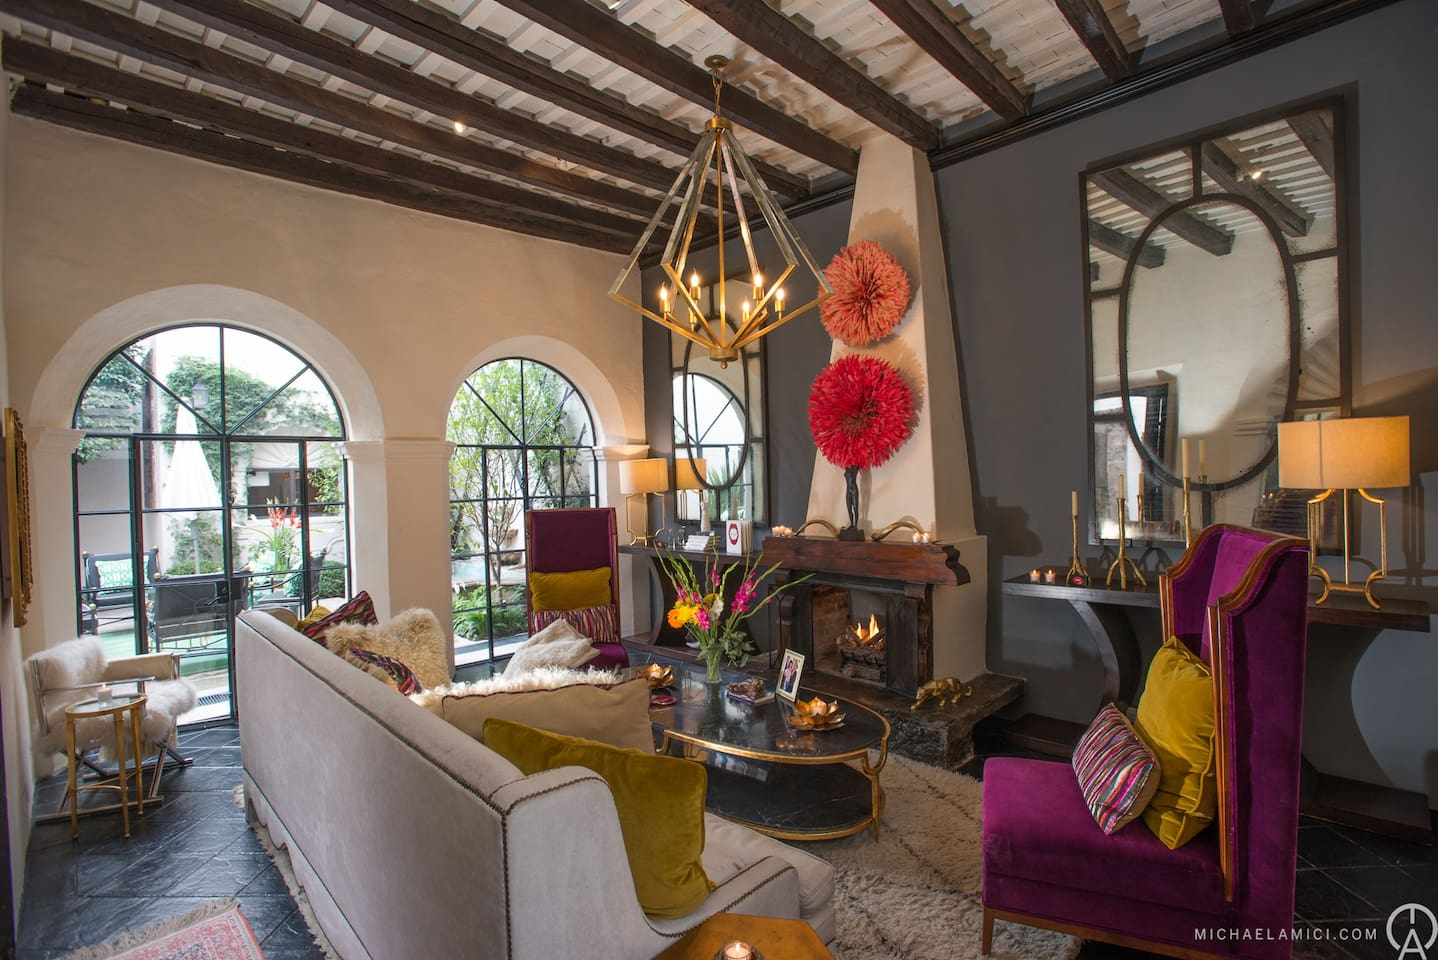 Snuggle Up or Celebrate in this Beautiful 300 Year Old Living Room!